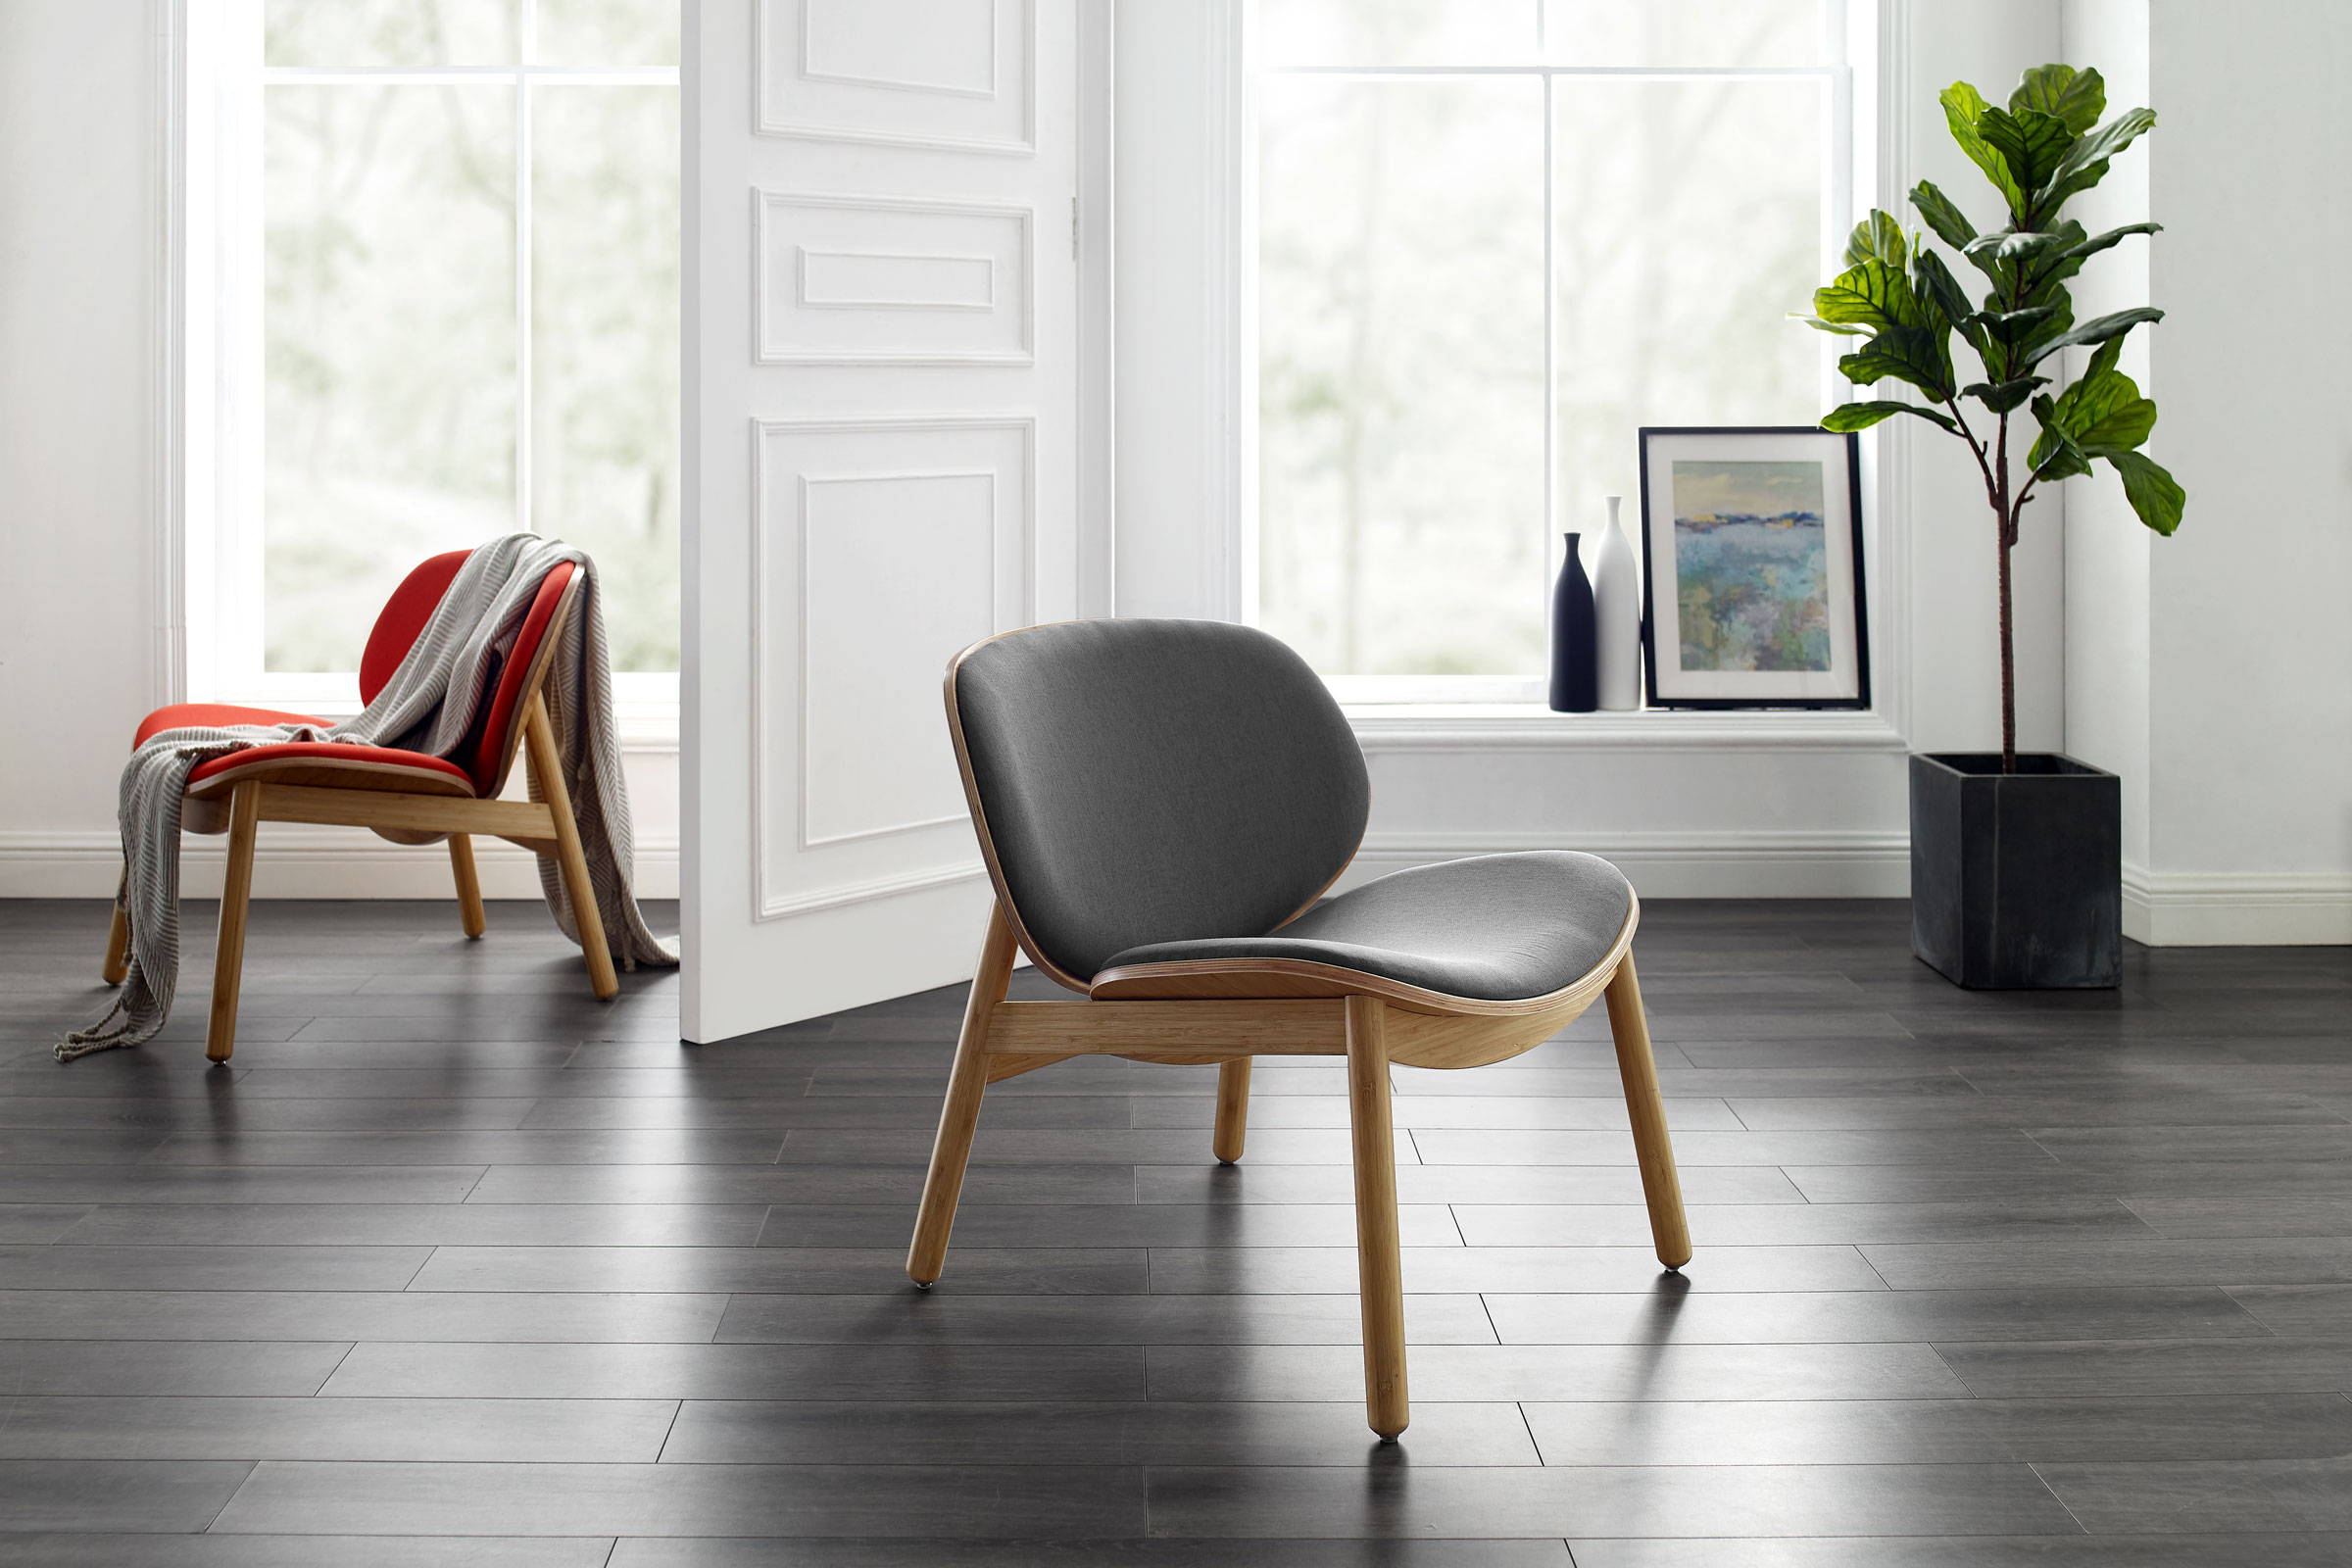 Greenington Bamboo Chair Combines Modern Mid-Century Design with Sustainability